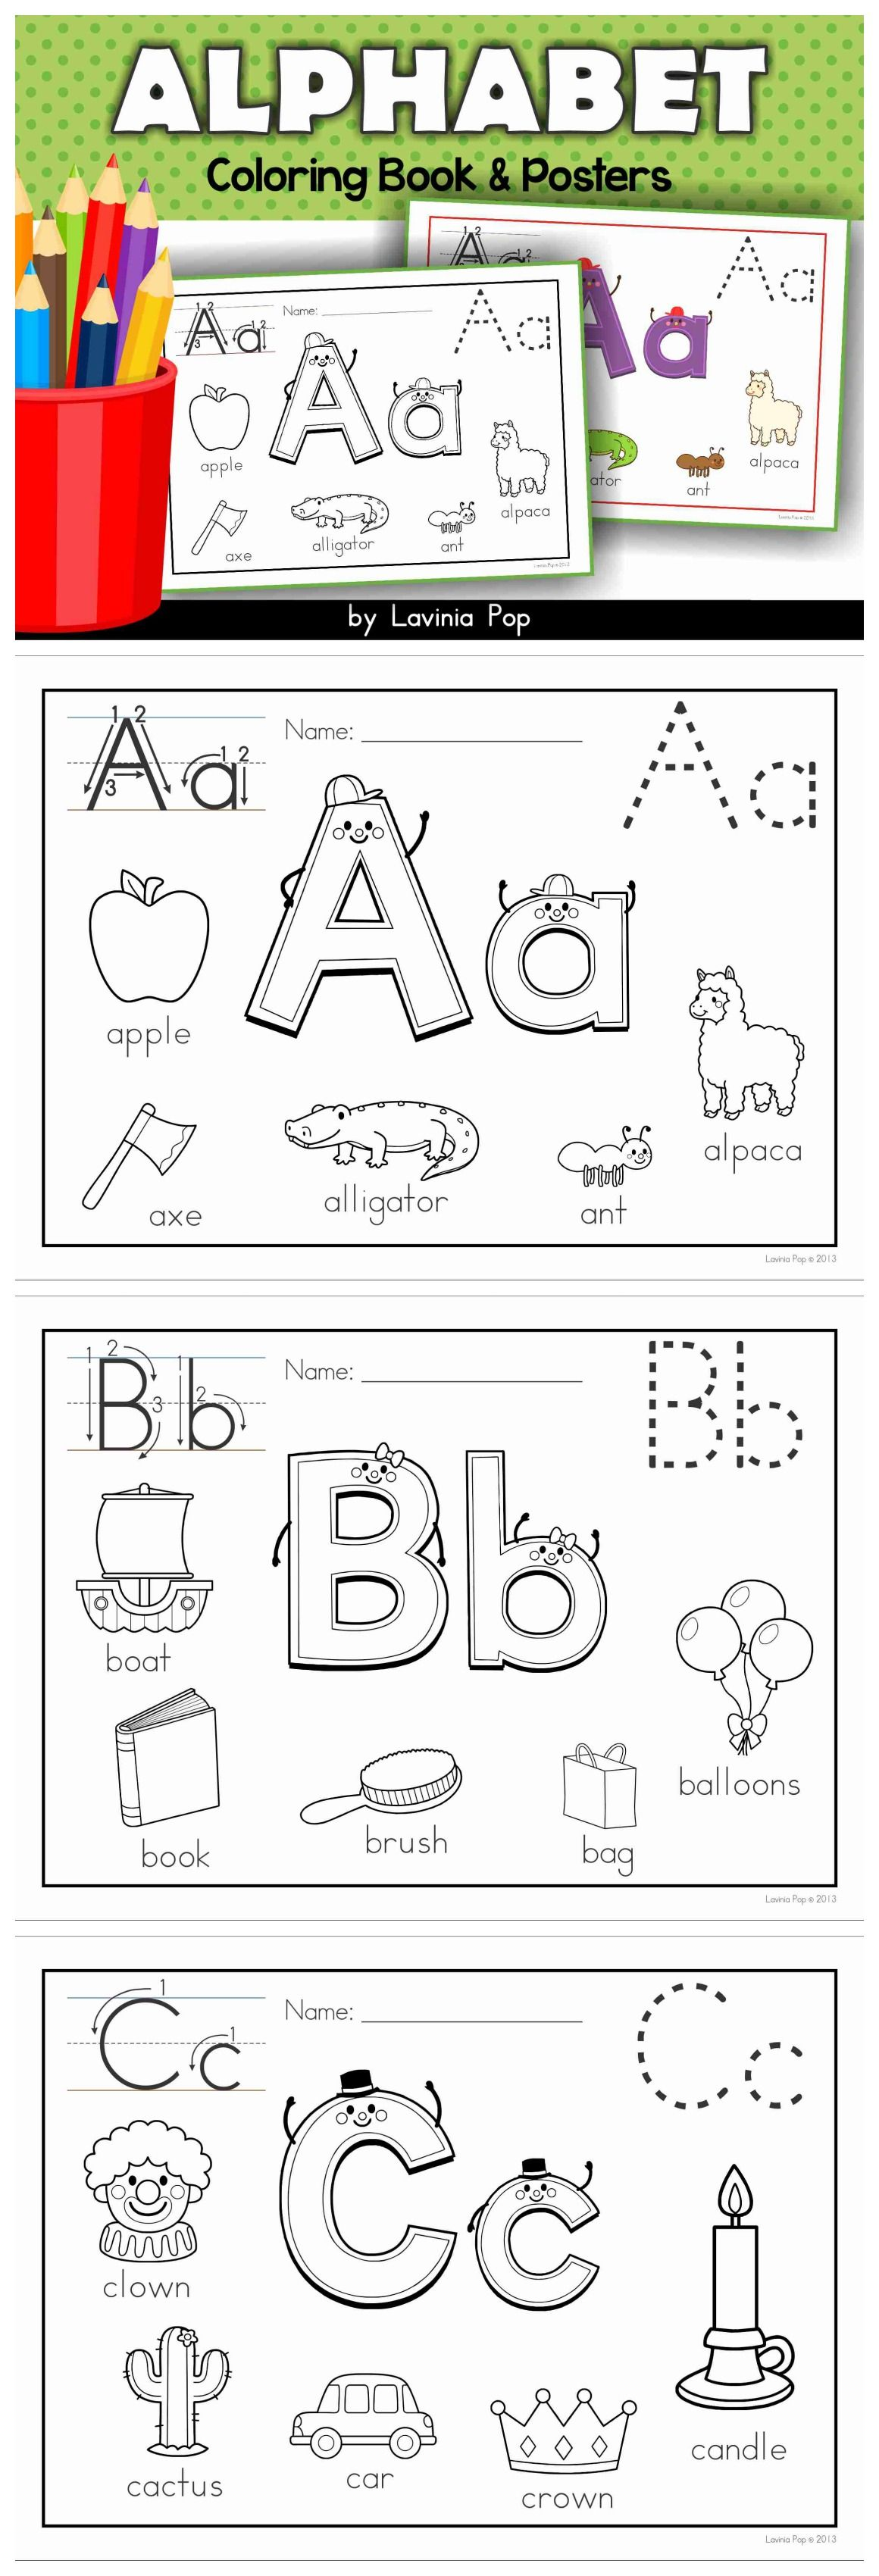 Alphabet Coloring Book and Posters | Vowel sounds, Long ...